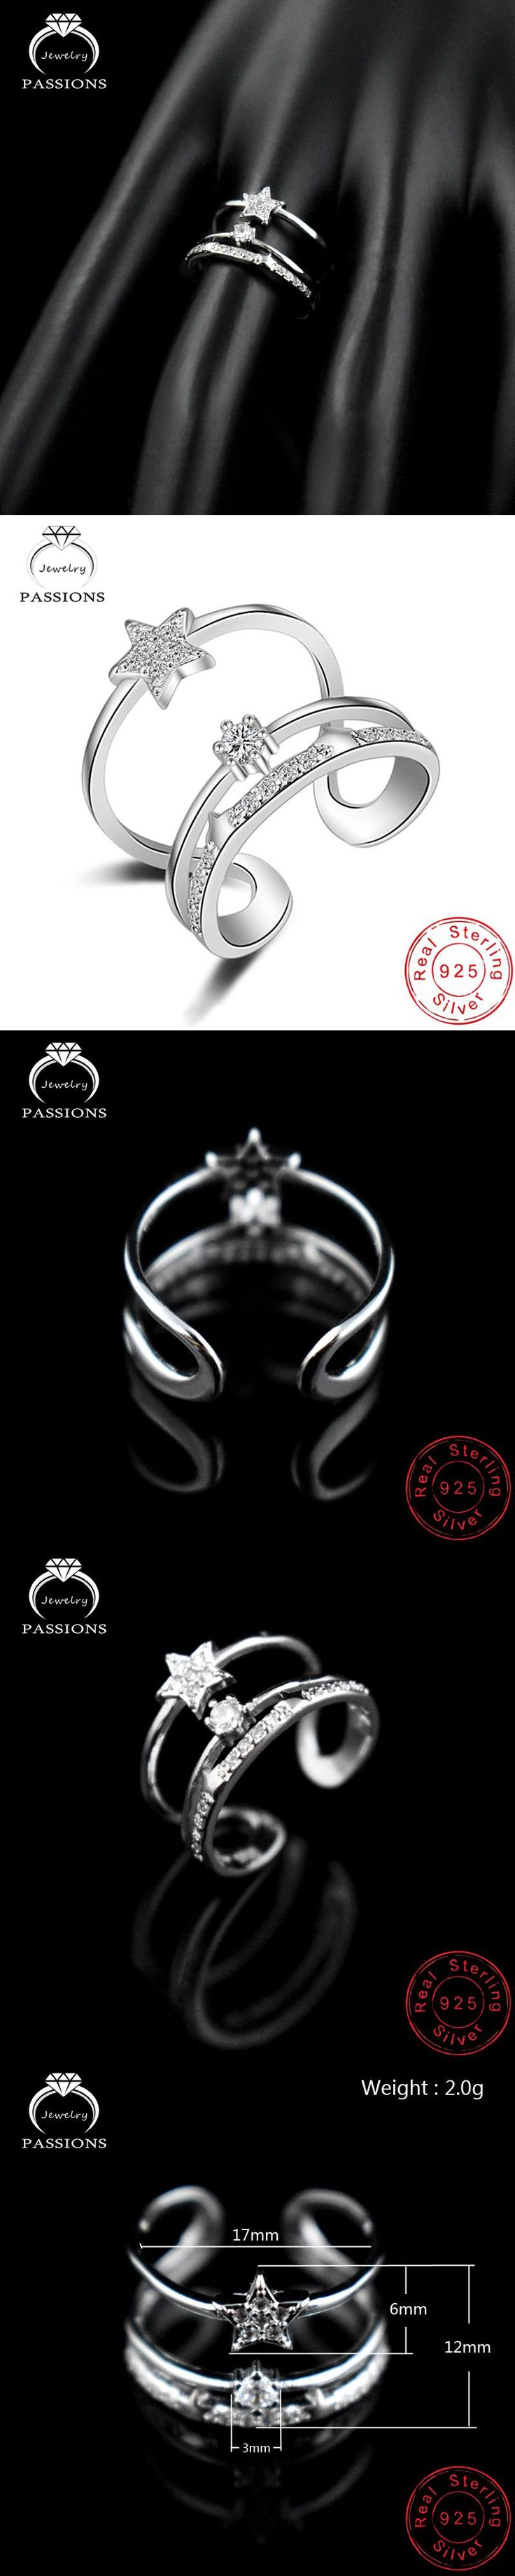 da41d760a3f9e0c416b714c0084af5a9 Top Result 50 Awesome Fire Rings for Sale